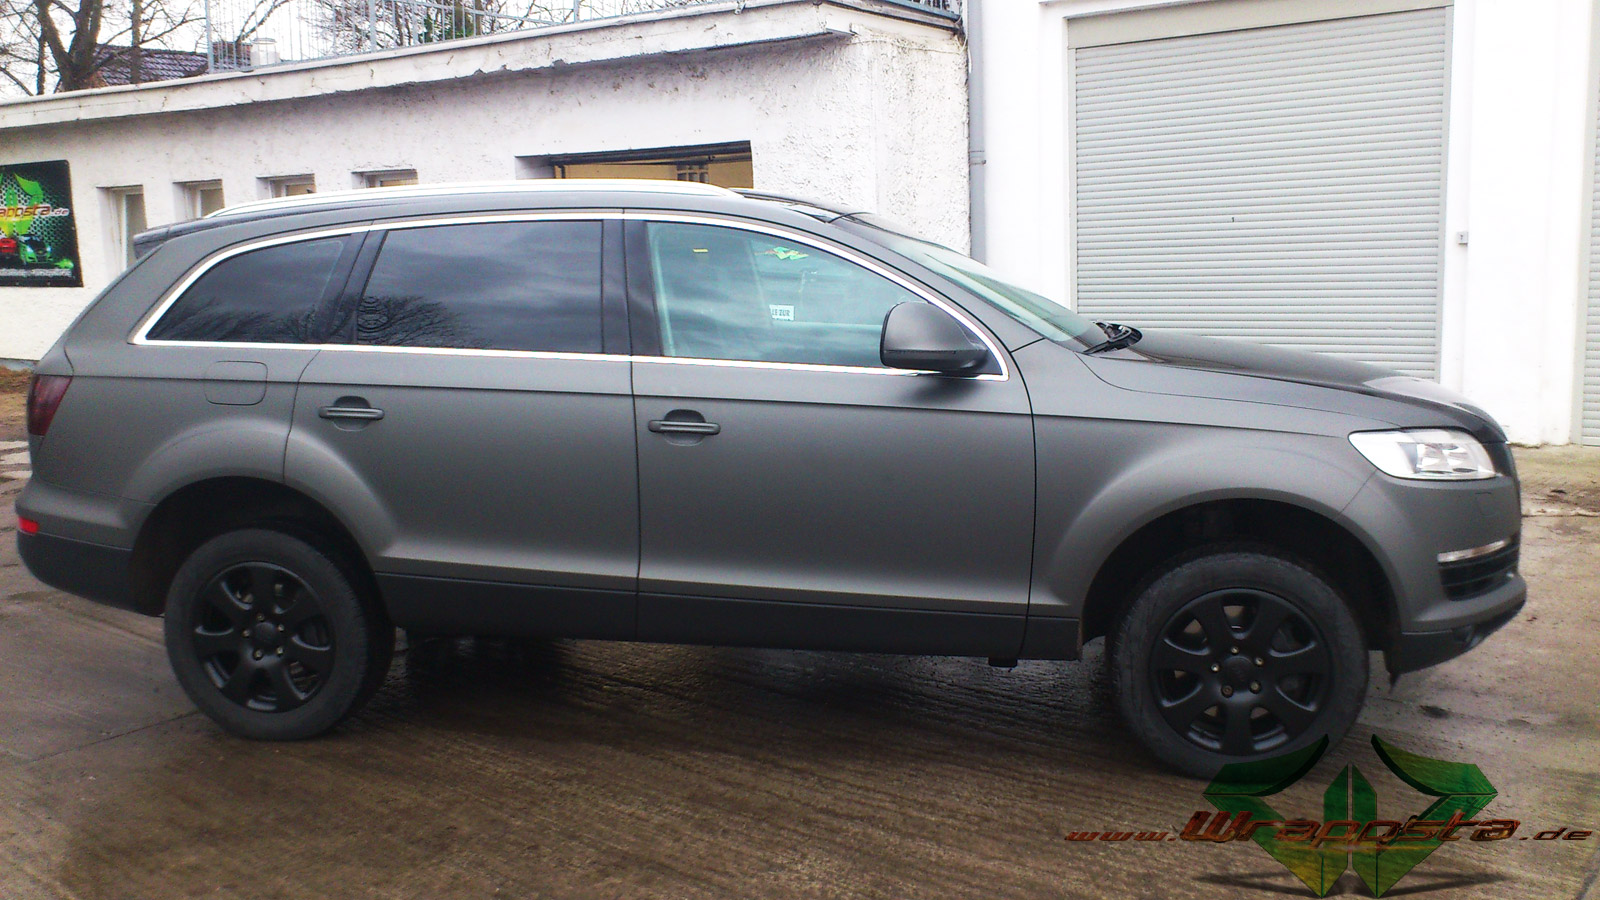 Audi Q7 Ultra Matt Anthrazit Metallic Amp Glanz Schwarz